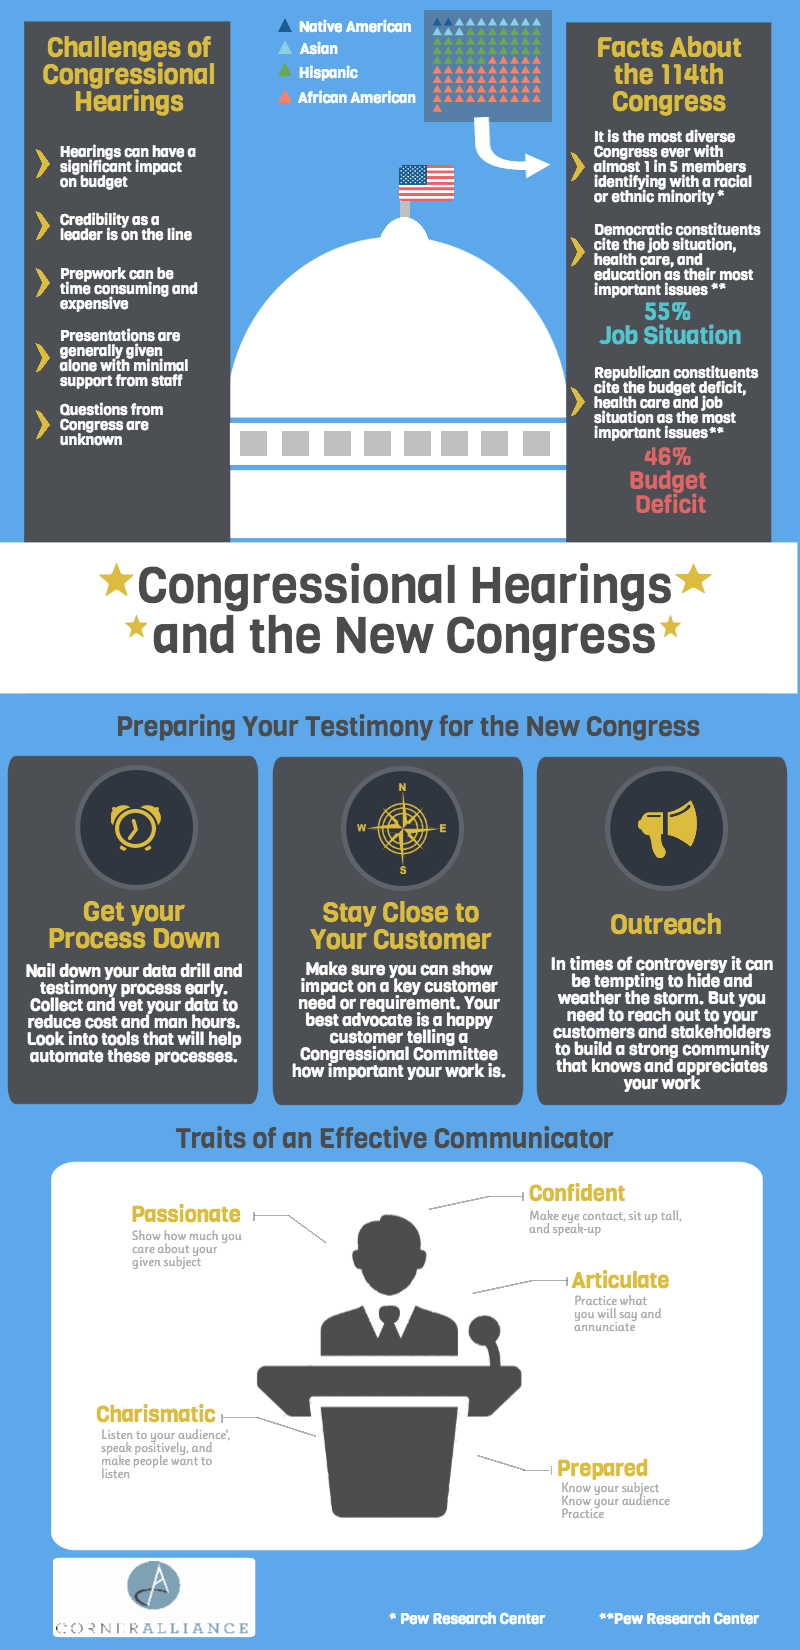 Congressional Hearings and the 114th Congress